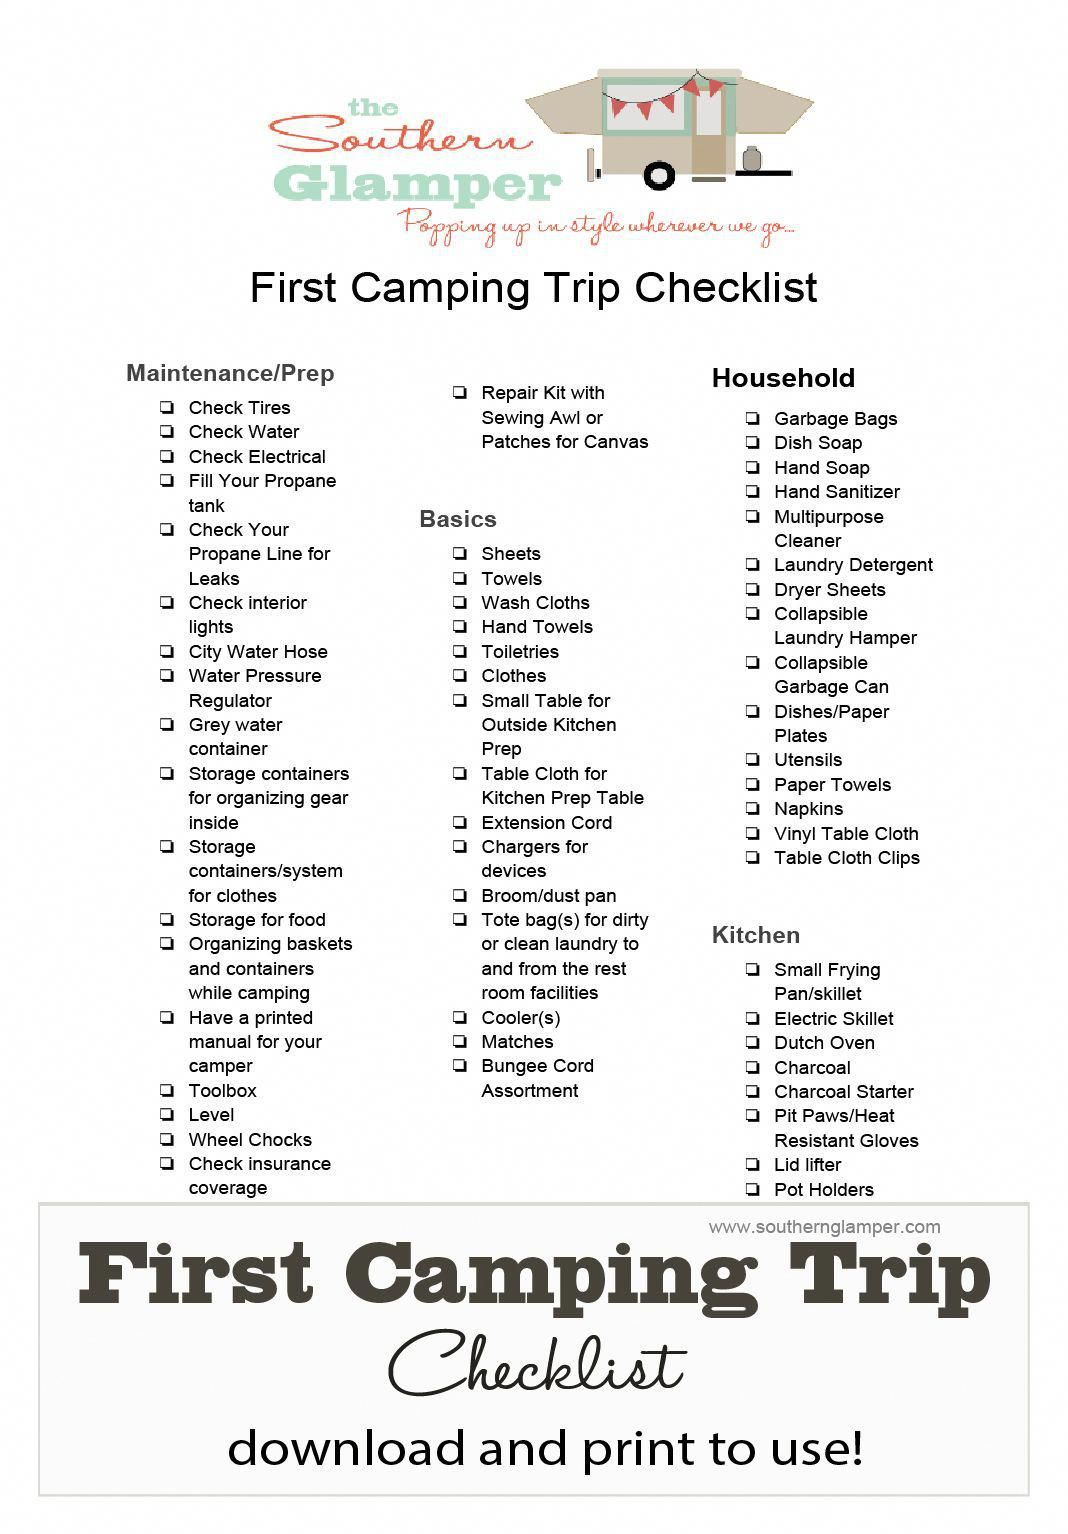 camping checklist to download and print for your first camping trip